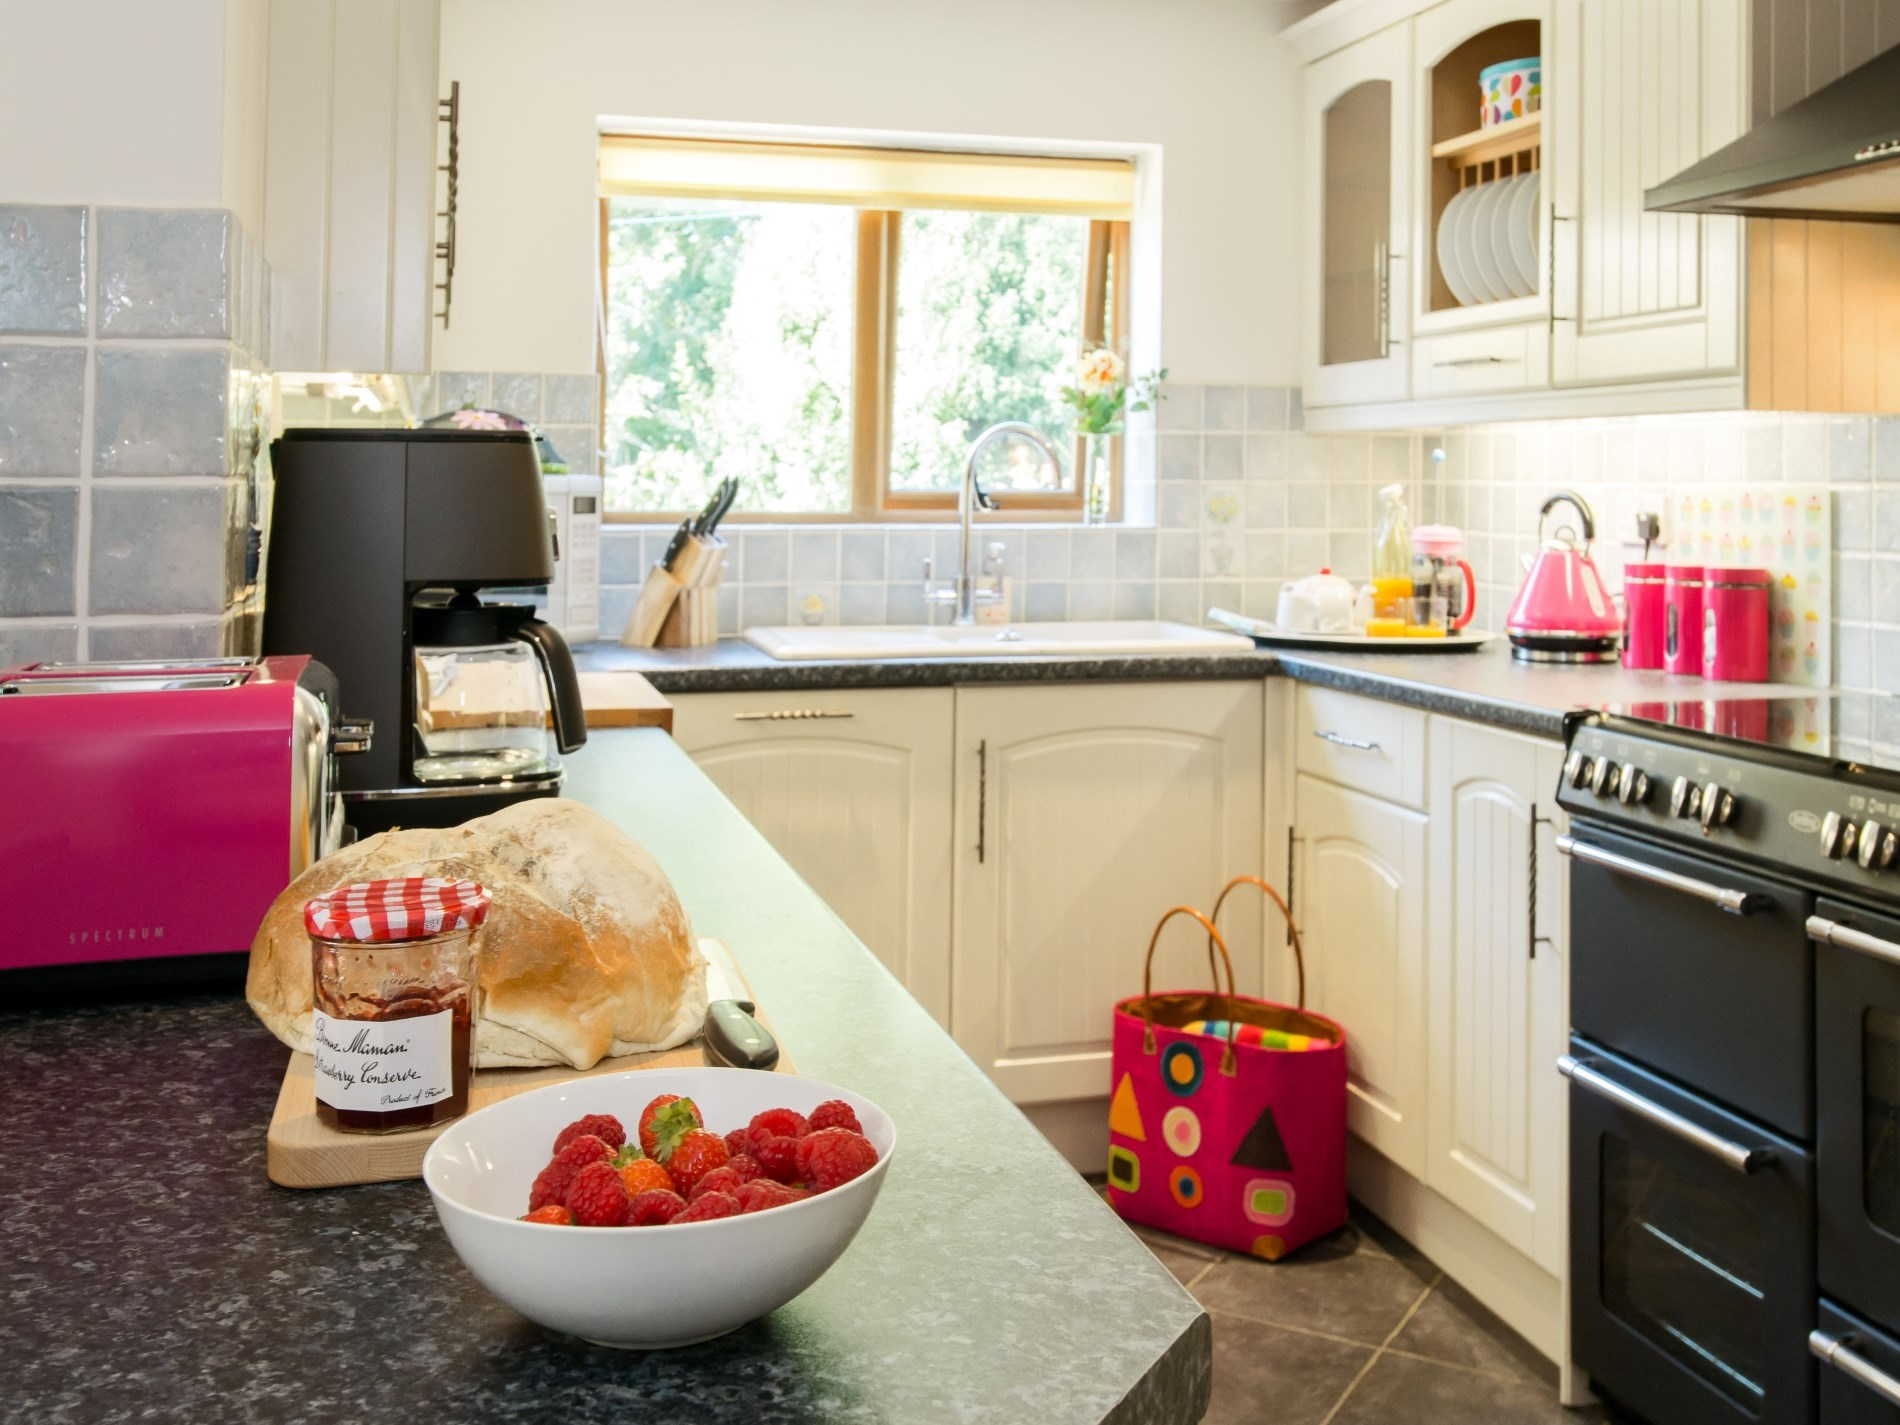 Pretty kitchen perfect for a bake off!